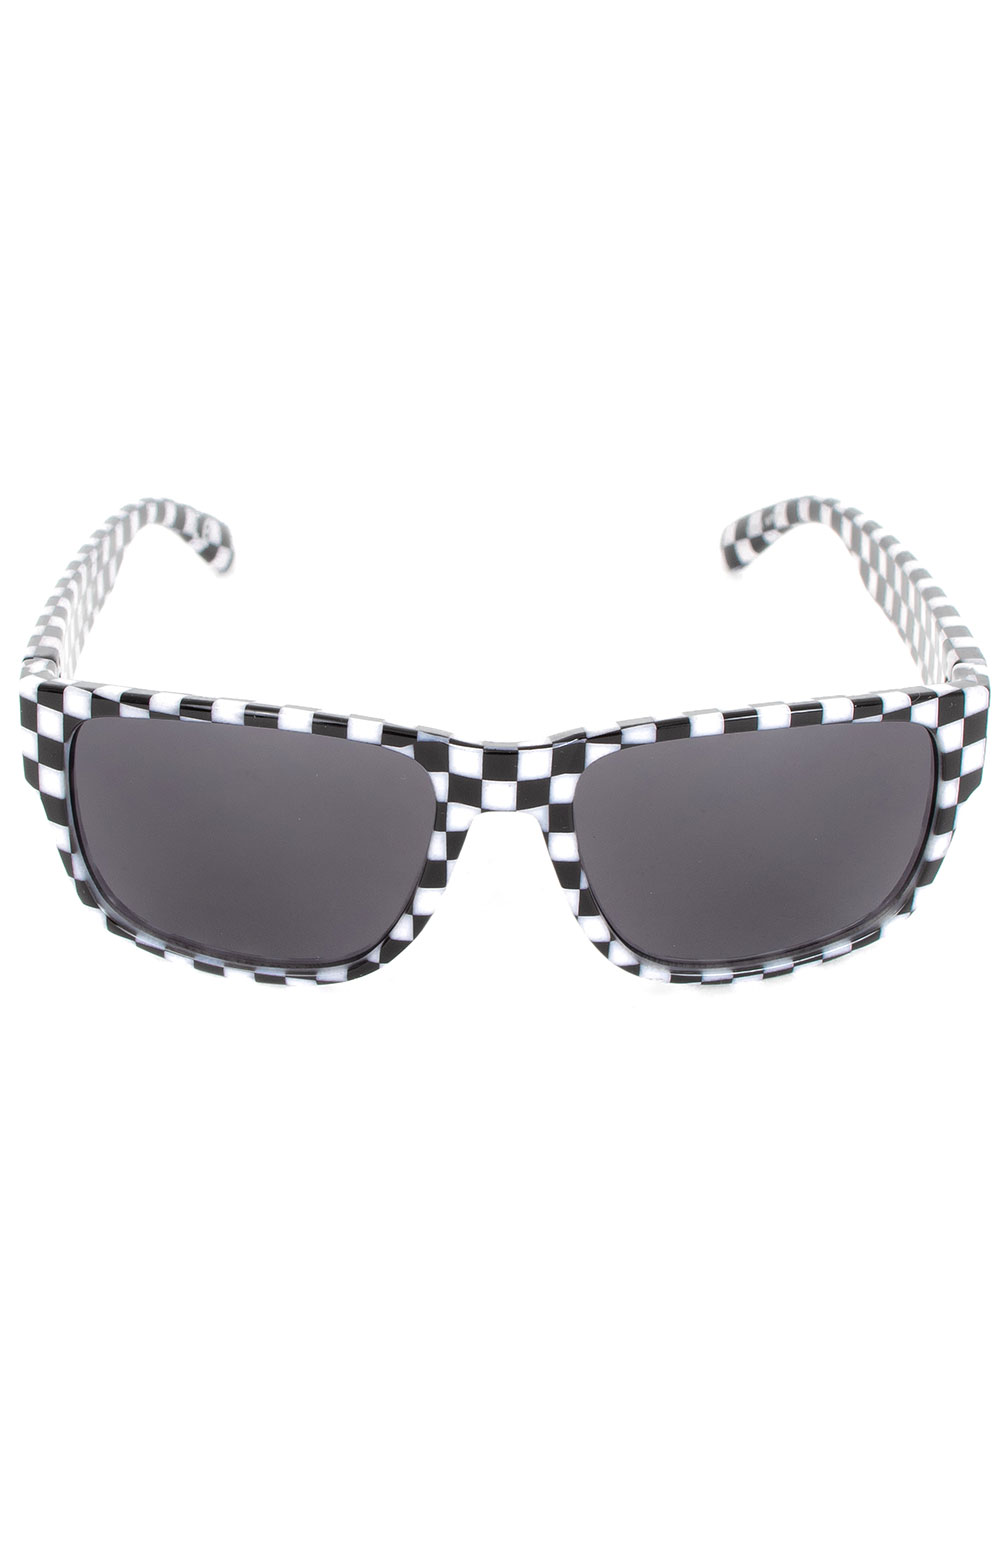 Darr Wrap Shades - Black/White 2